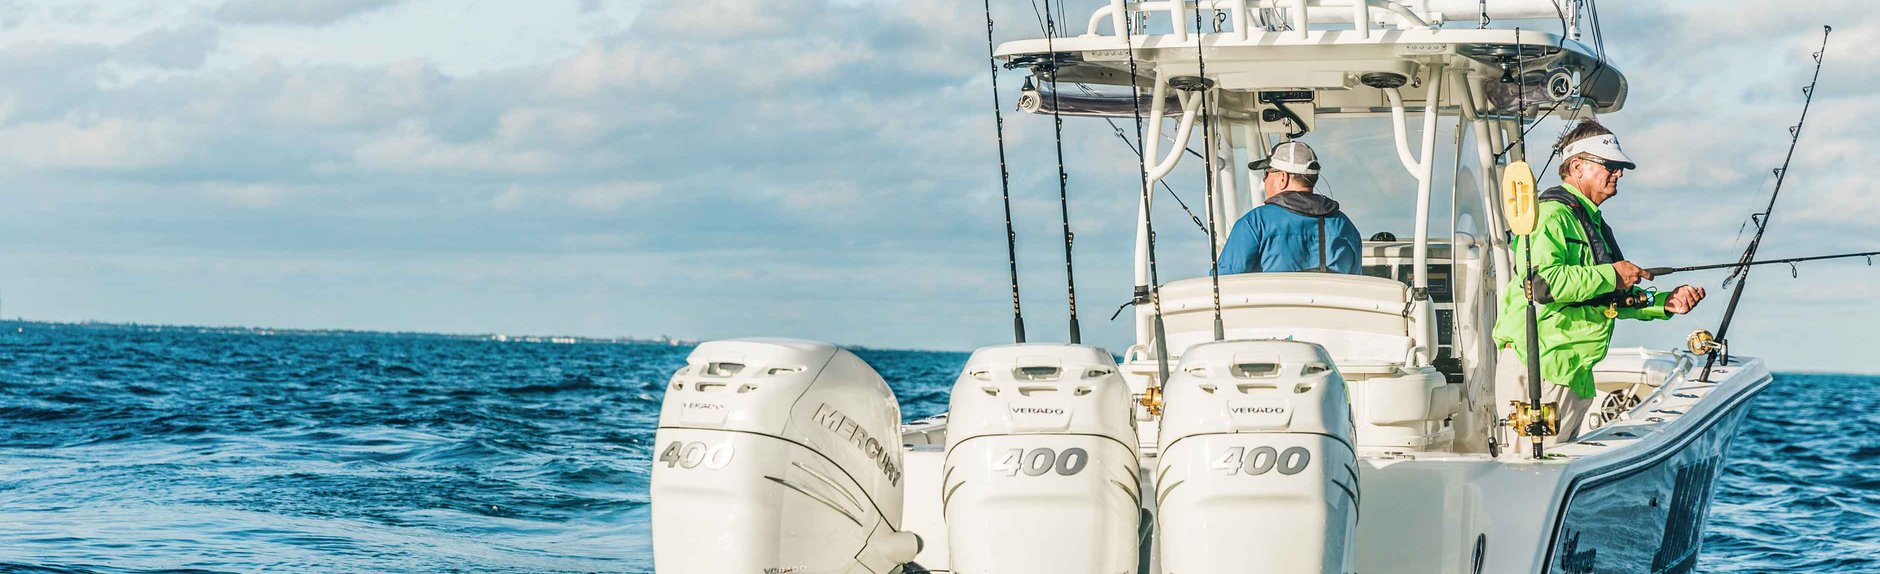 Mercury 400 outboards